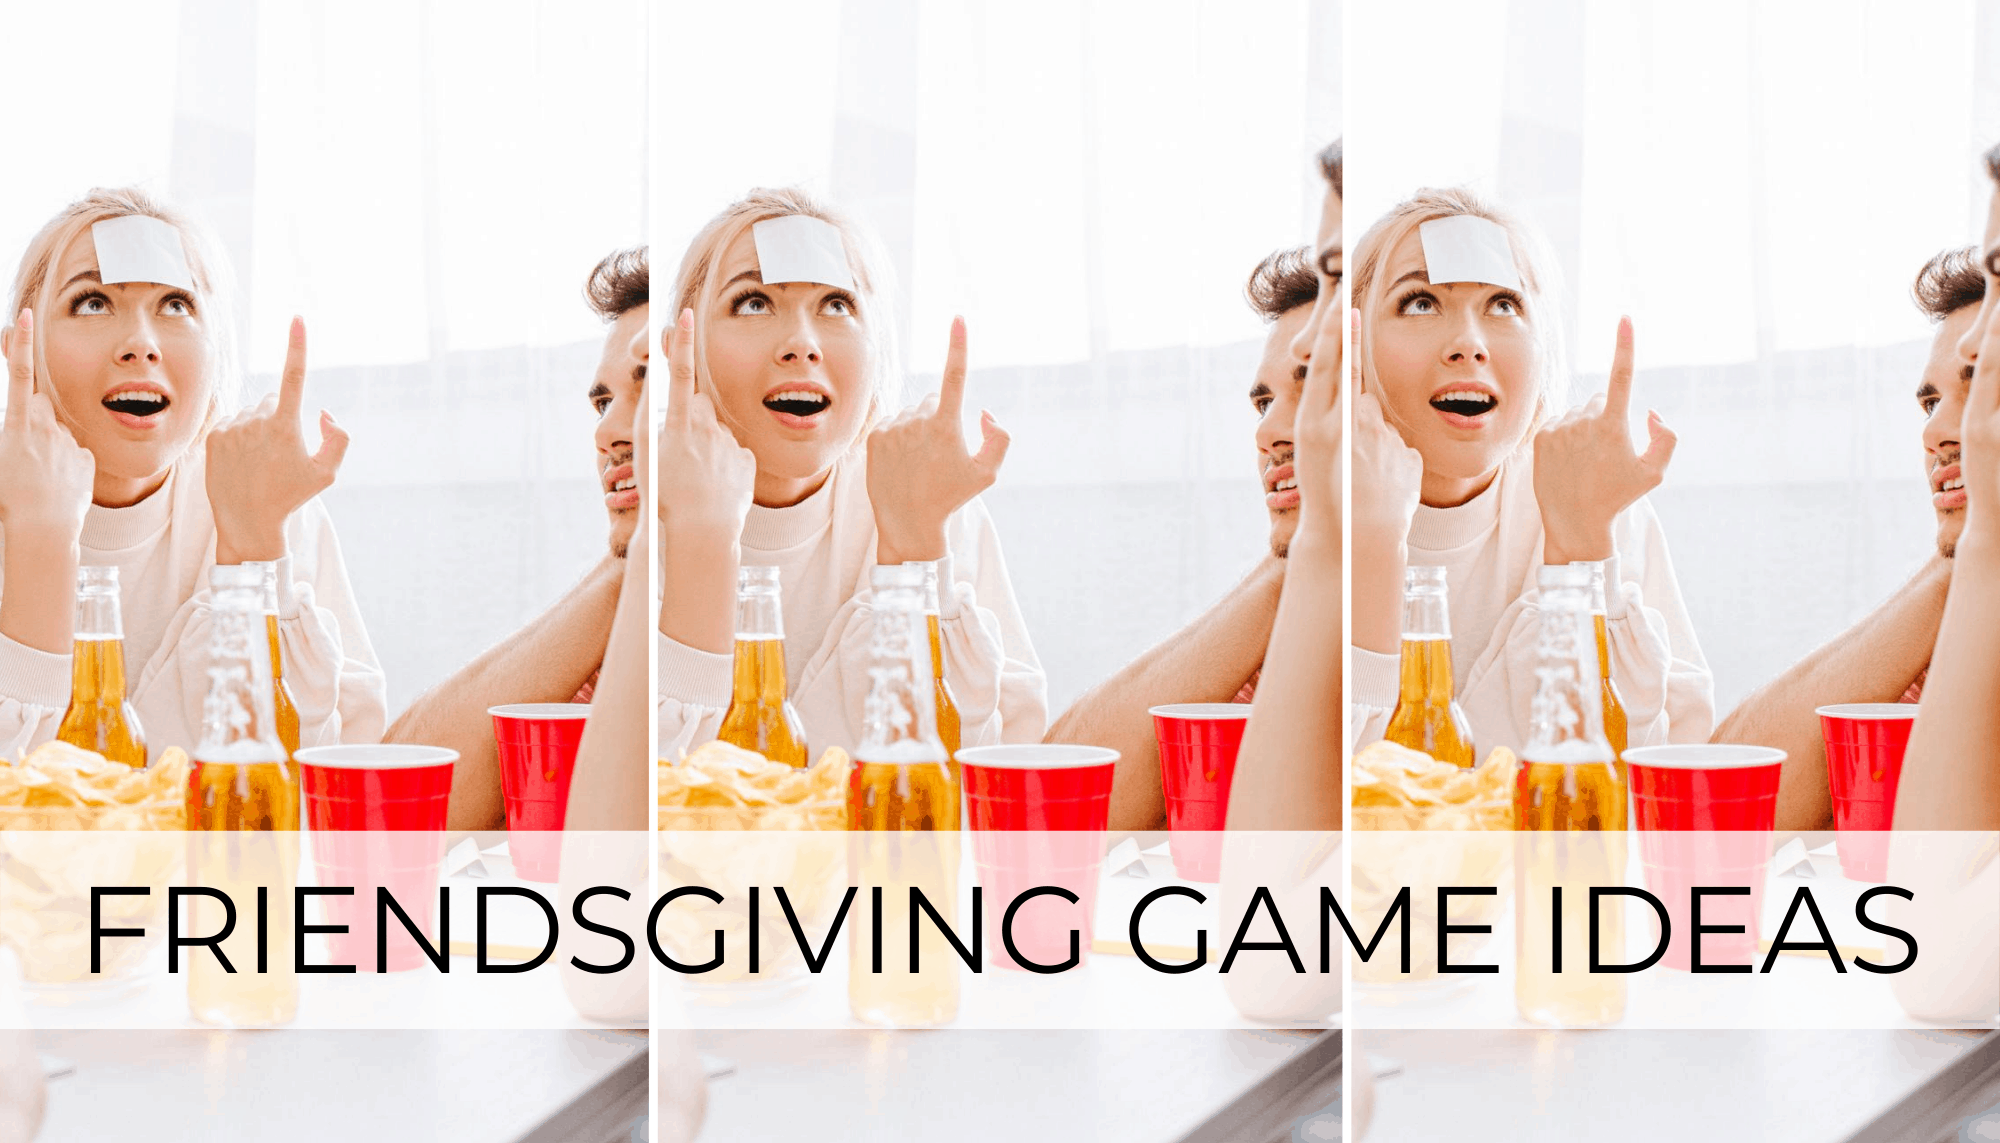 friendsgiving game ideas